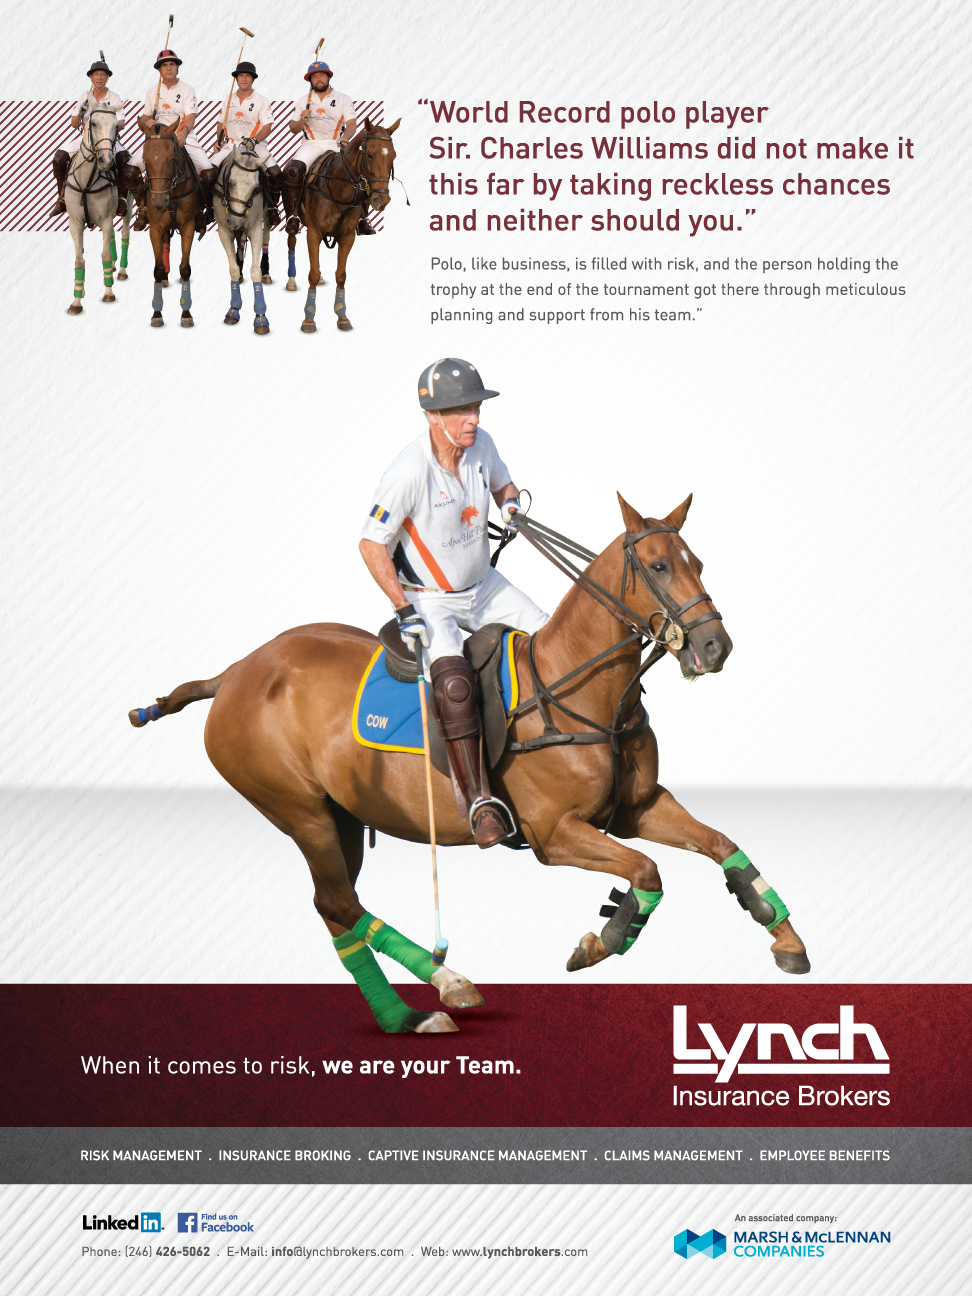 Lynch---Risk---Polo---Sir-Charles---2016.png